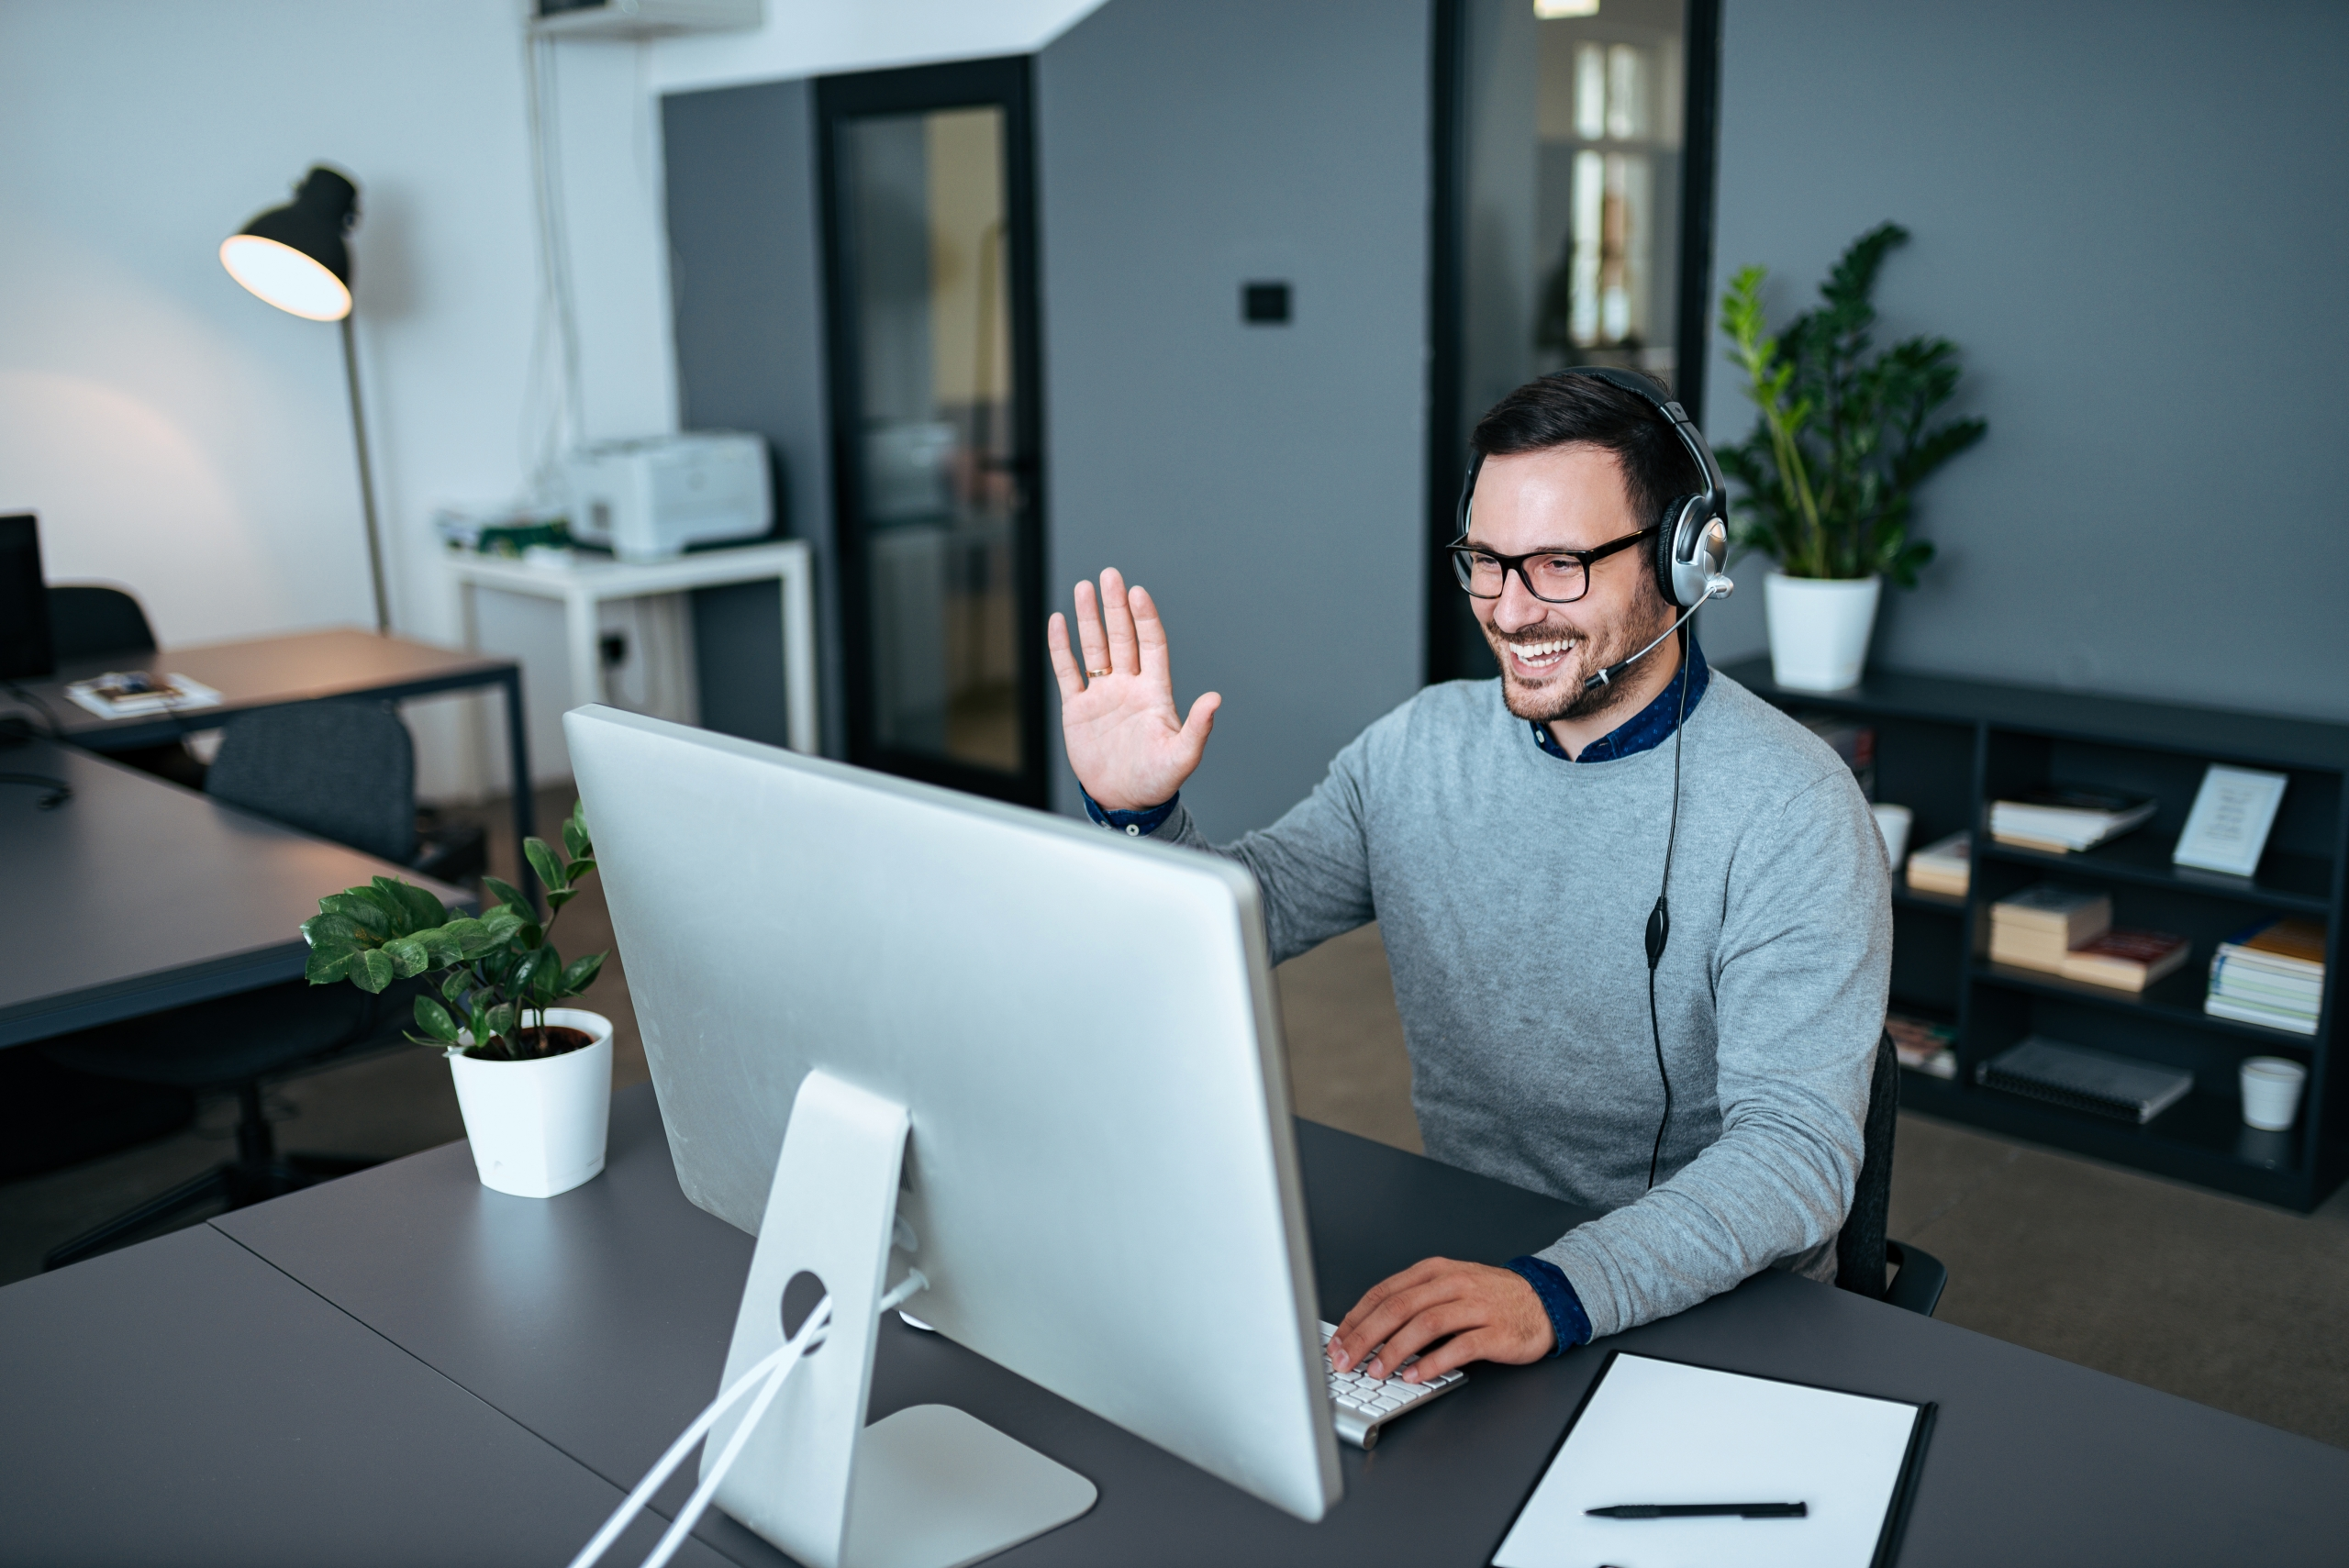 AI Supporting the Remote Worker